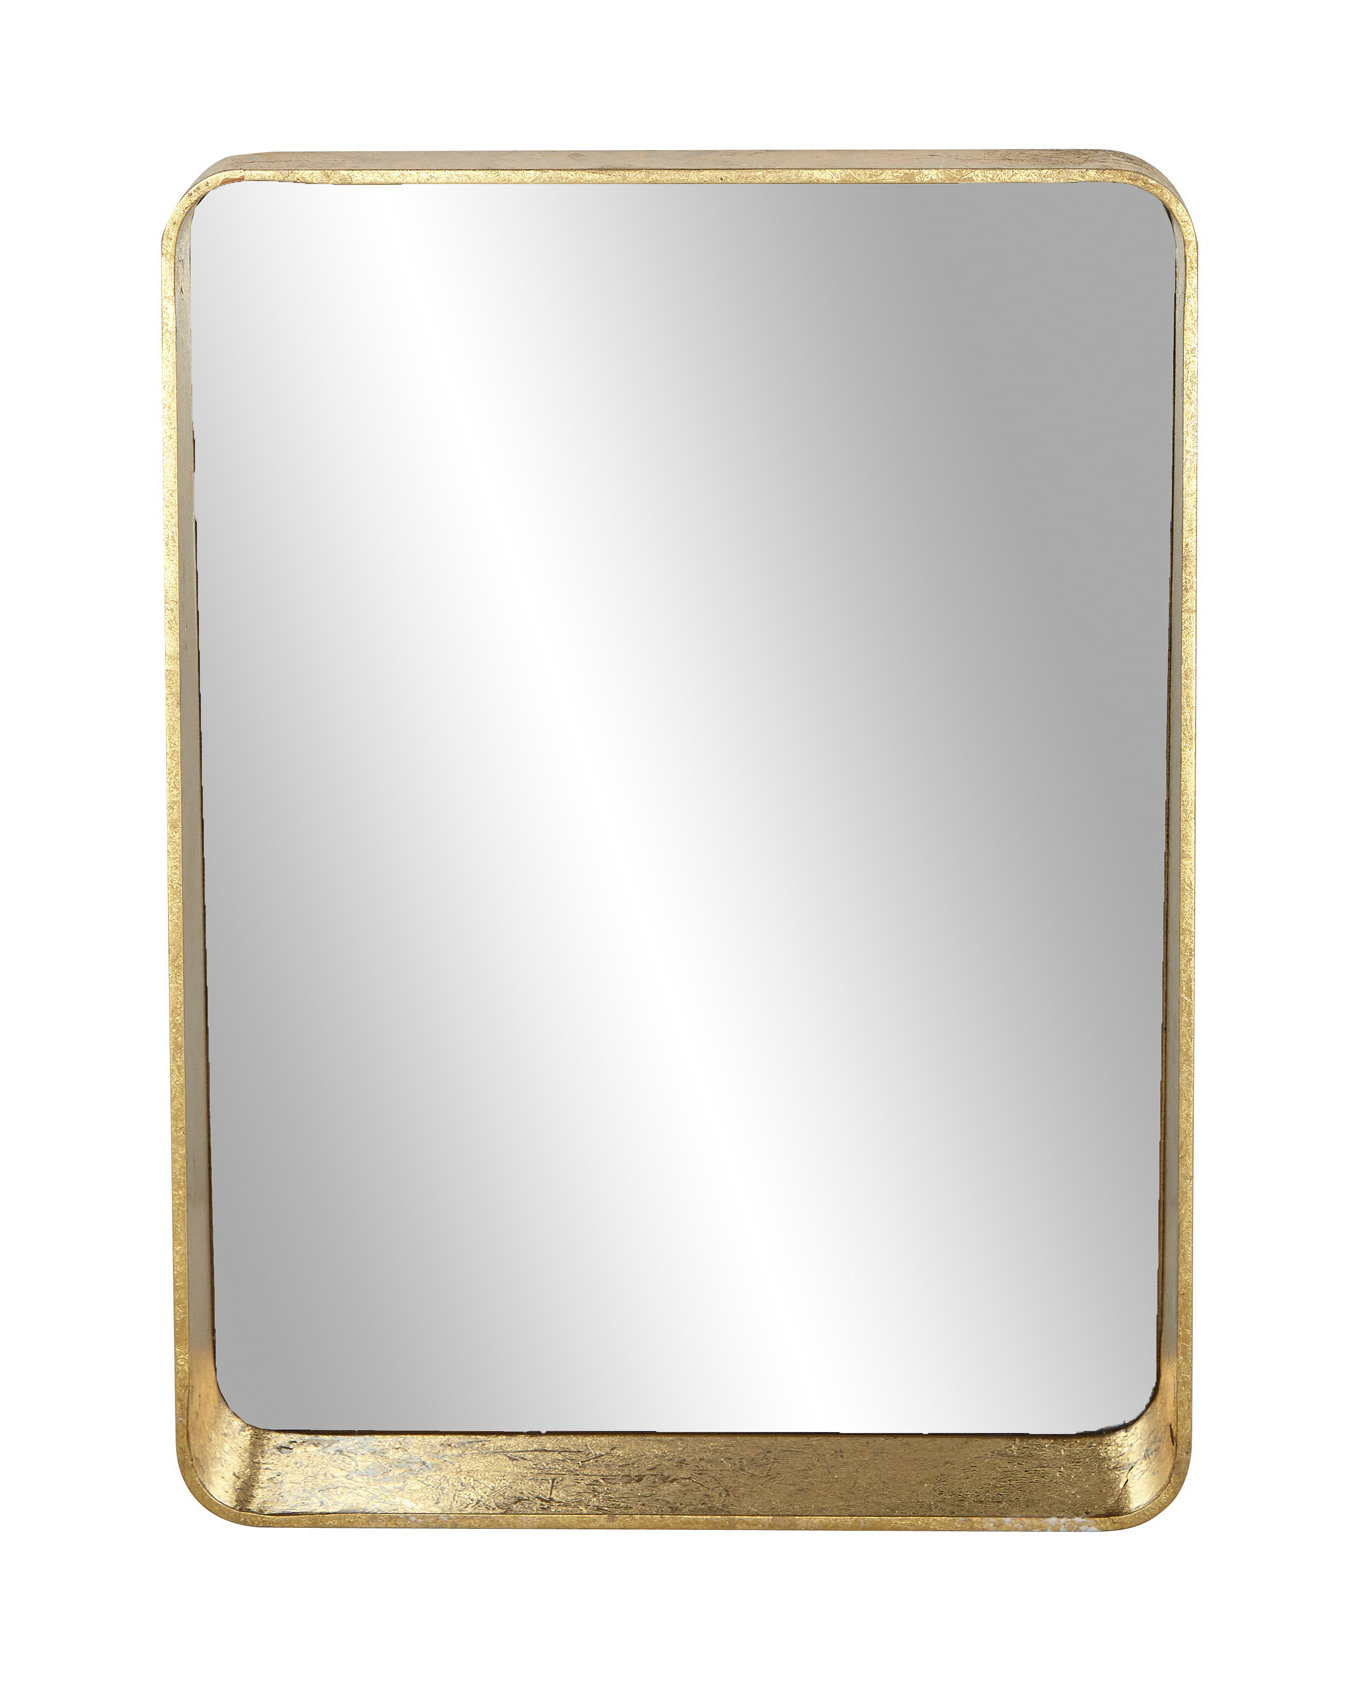 Ginyard Modern And Contemporary Accent Mirror Inside Most Popular Lugo Rectangle Accent Mirrors (View 14 of 20)